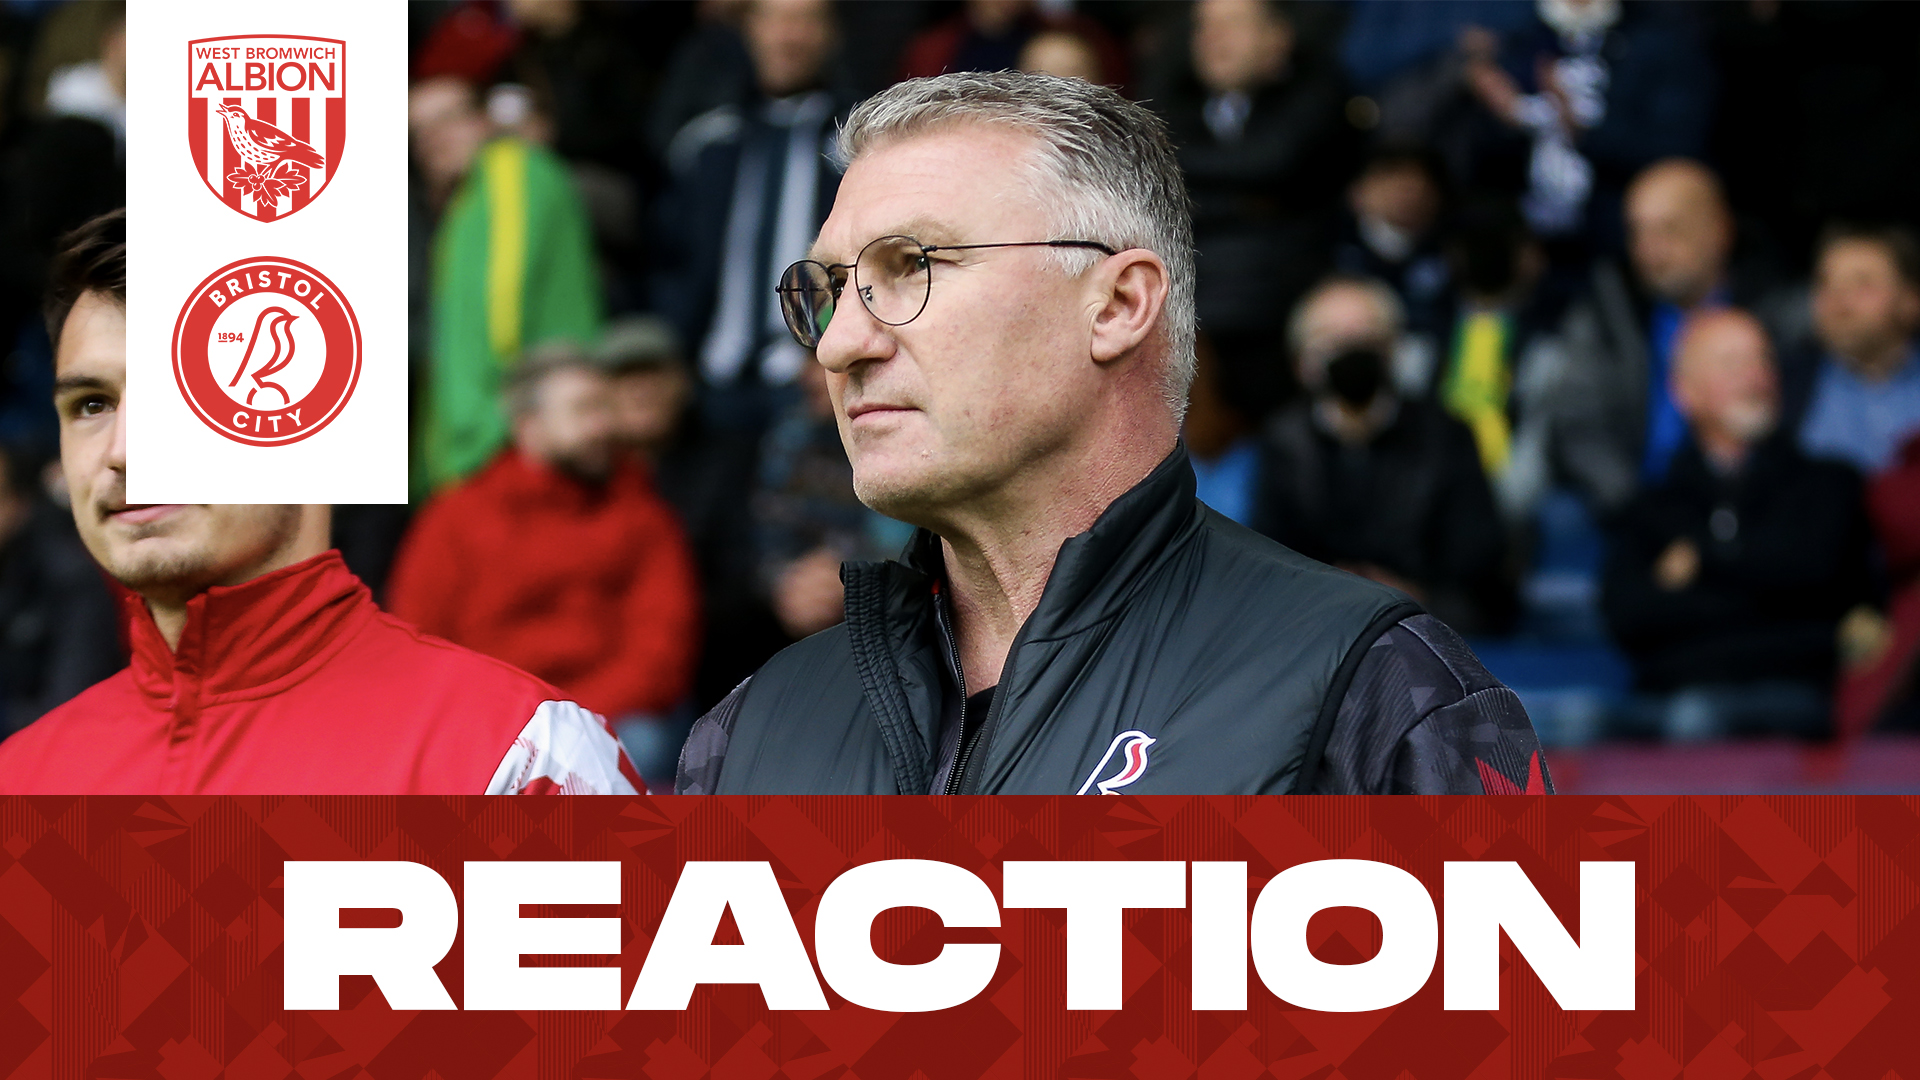 Pearson on West Brom defeat